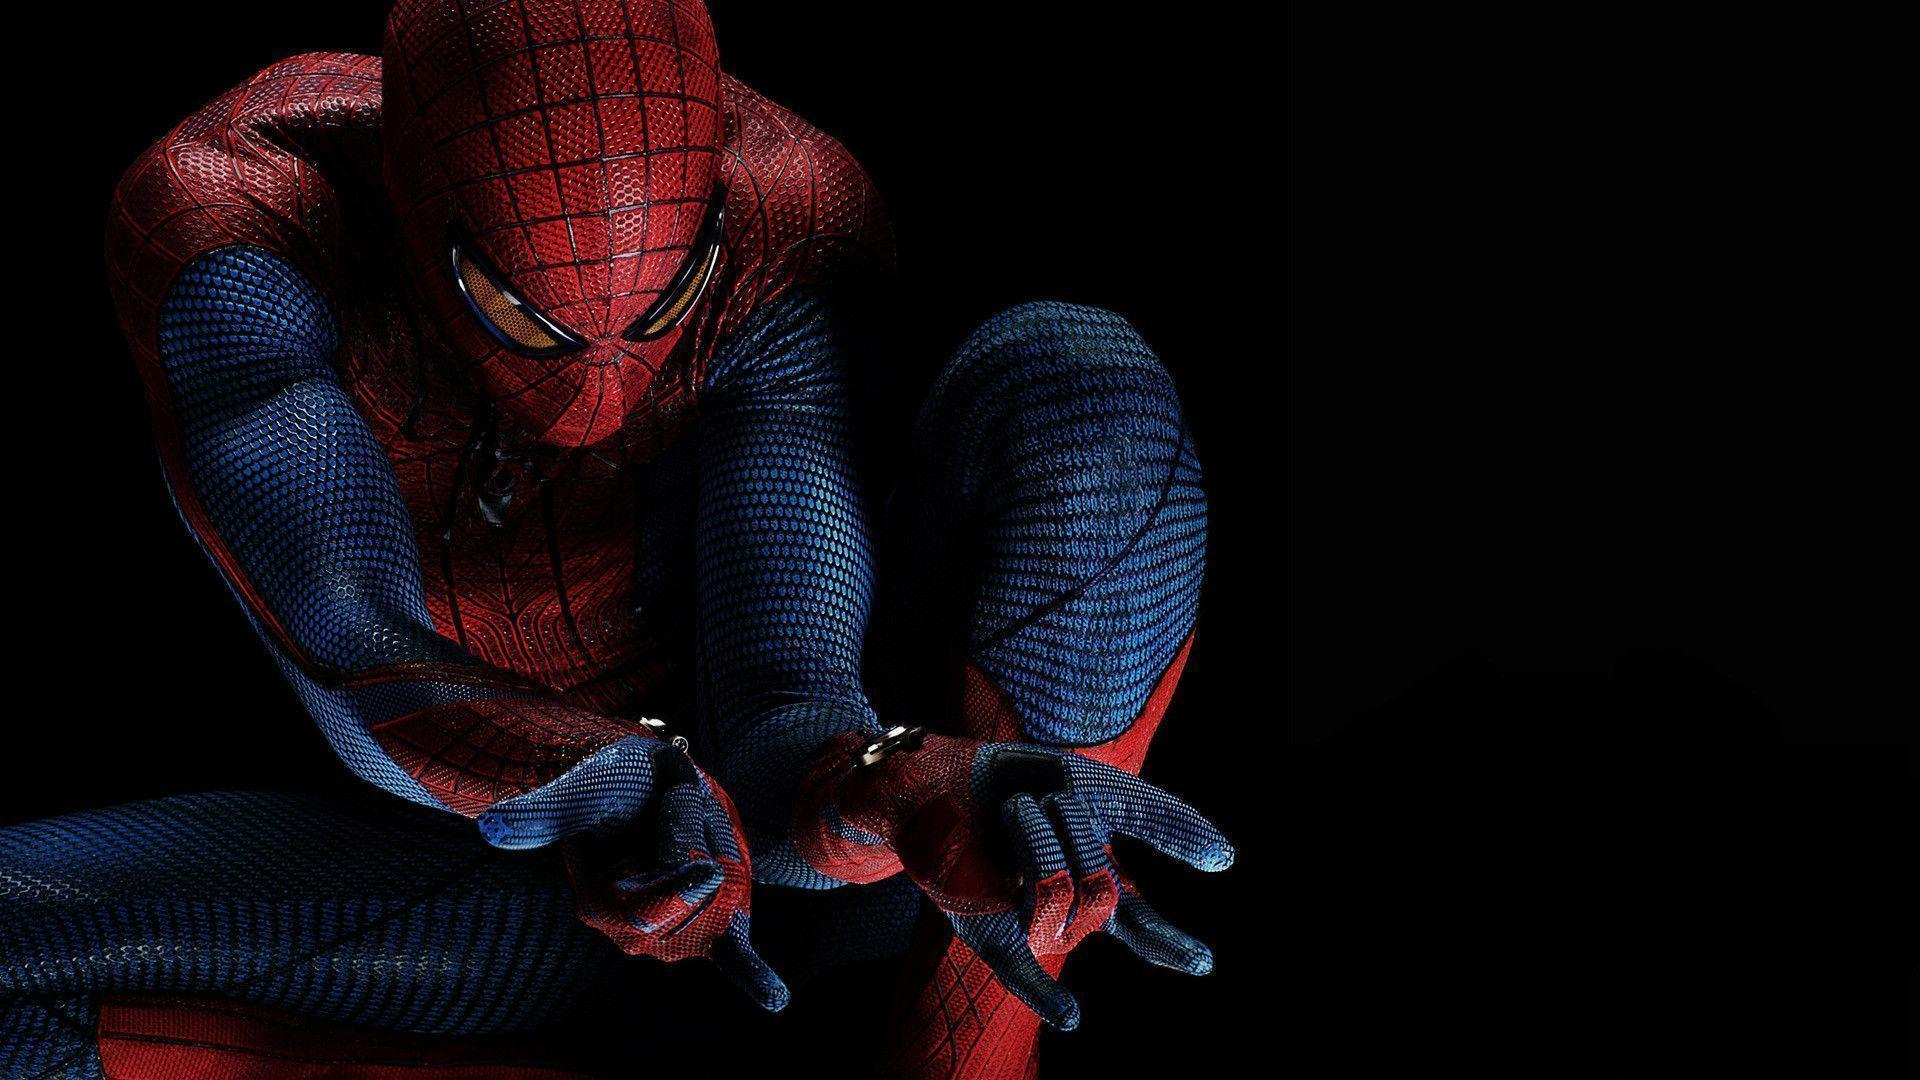 Wallpapers For > Spiderman Wallpapers Hd 1080p